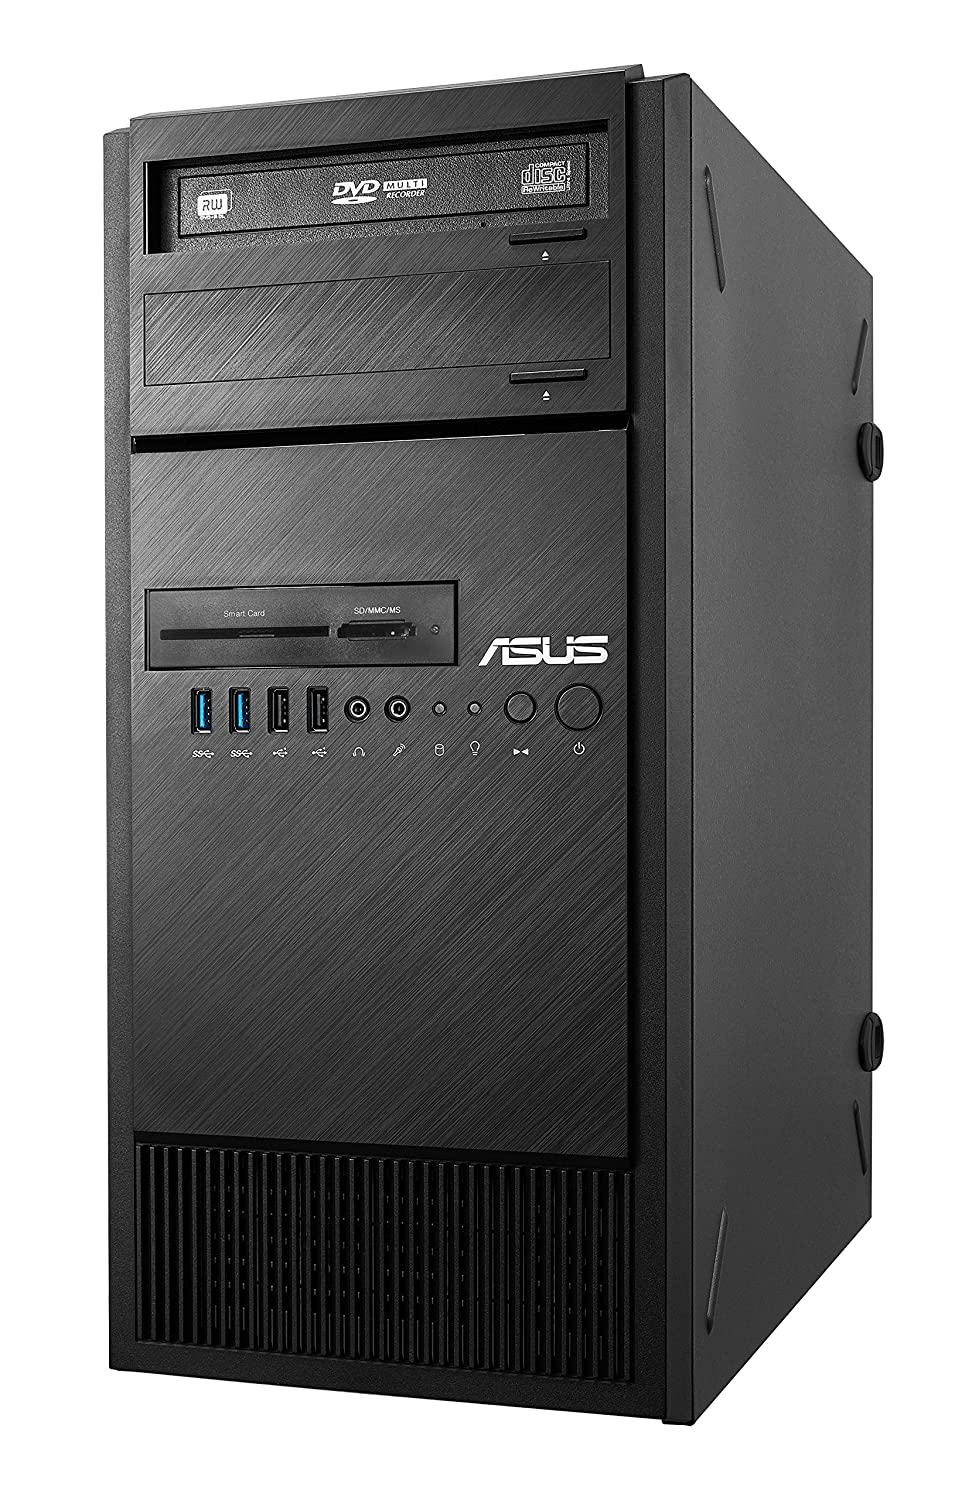 ASUS Workstation ESC500 G4-M3Q Intel® Core i5-7500 4X 3.40GHz, 8GB RAM, 256GB SSD, HD Grafik 630, OOS